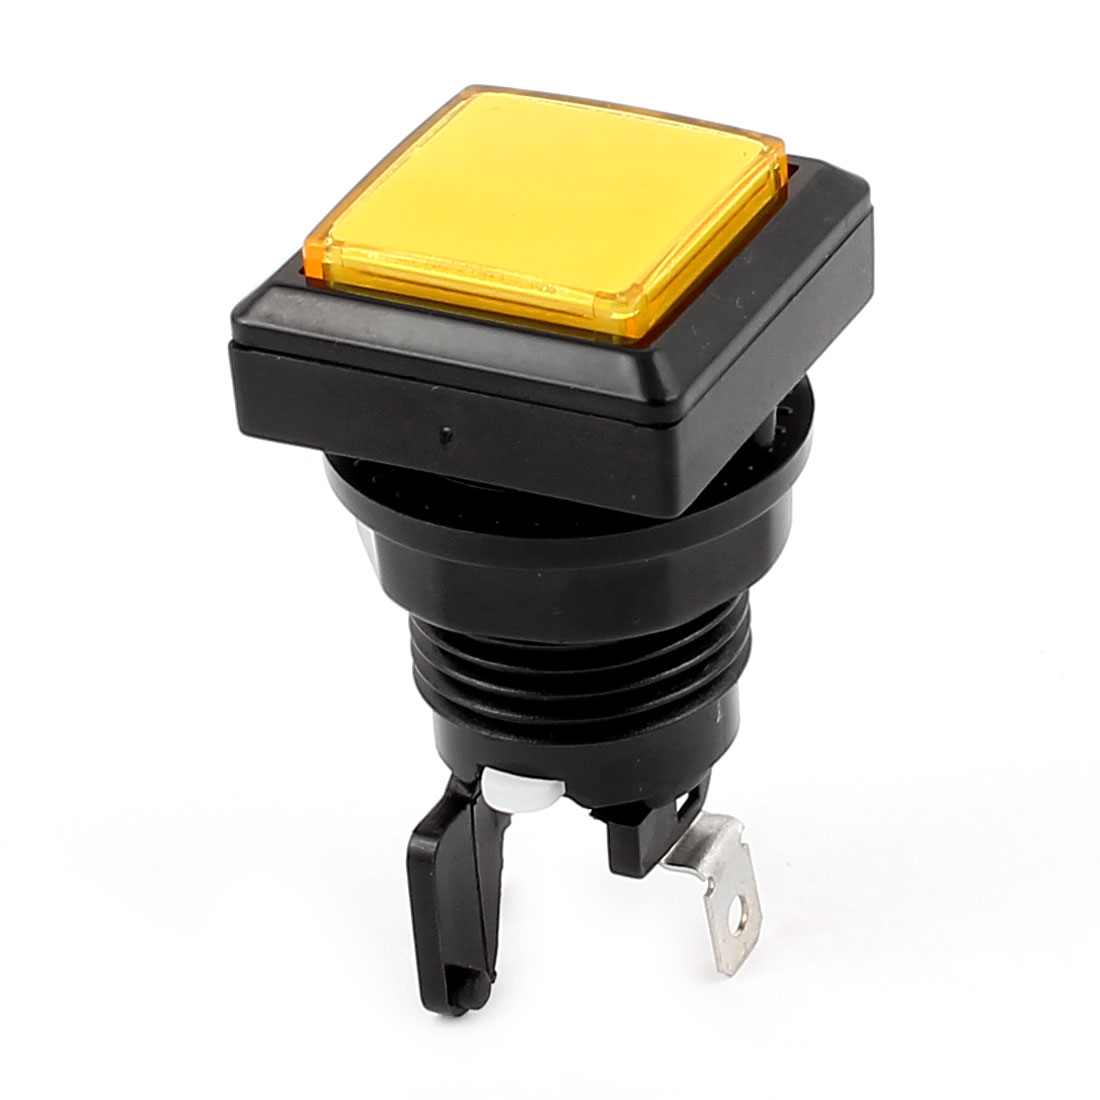 UXCELL Contact Type Yellow Square Cap Momentary Push Button Switch For Gaming Machine With Lamp momentary